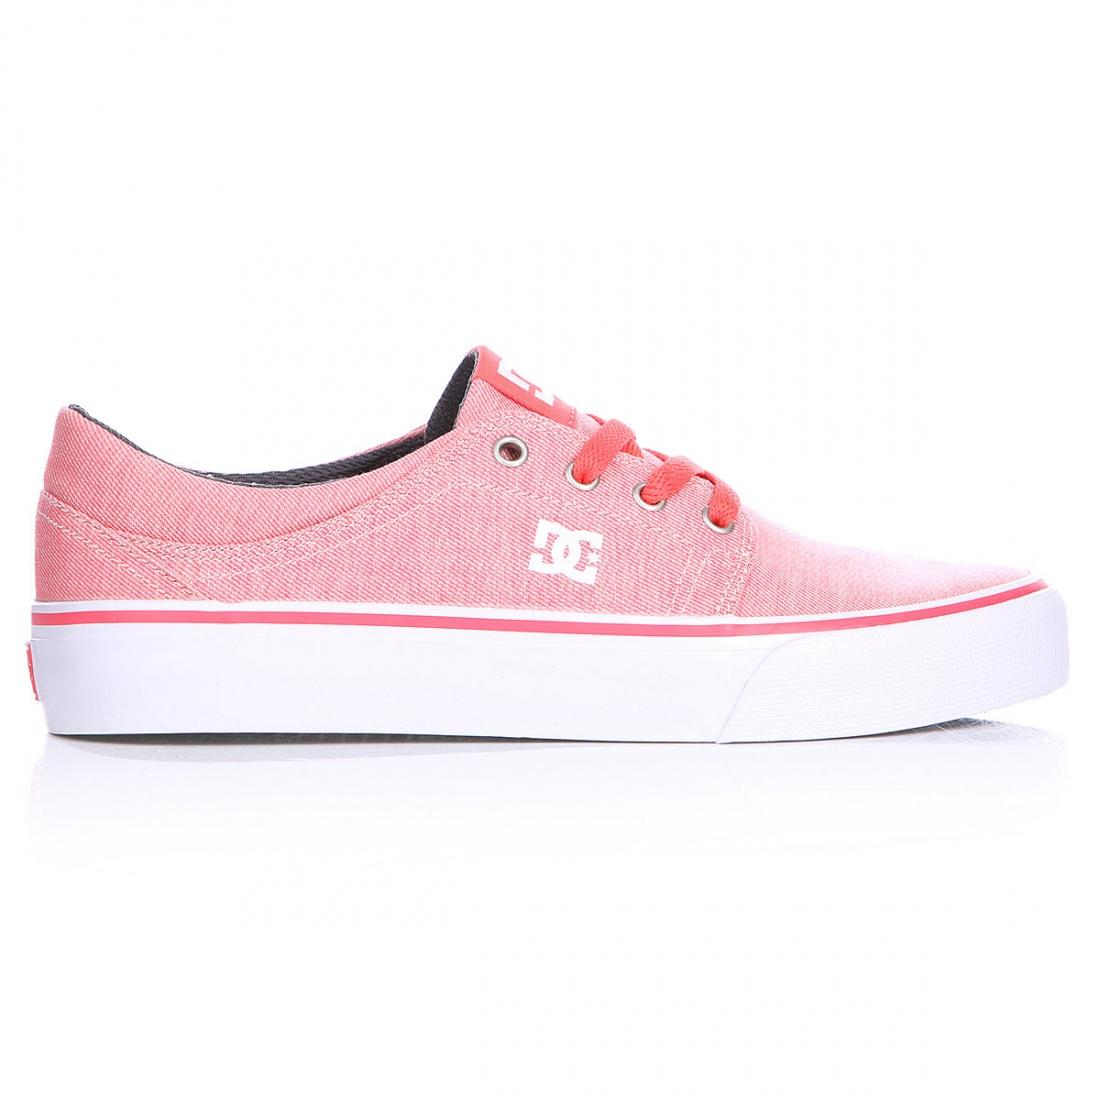 DC SHOES Кеды DC shoes Trase TX SE PINK/RASPBERRY US 5 dc shoes зимние кеды dc shoes evan smith wnt wheat fw17 us 9